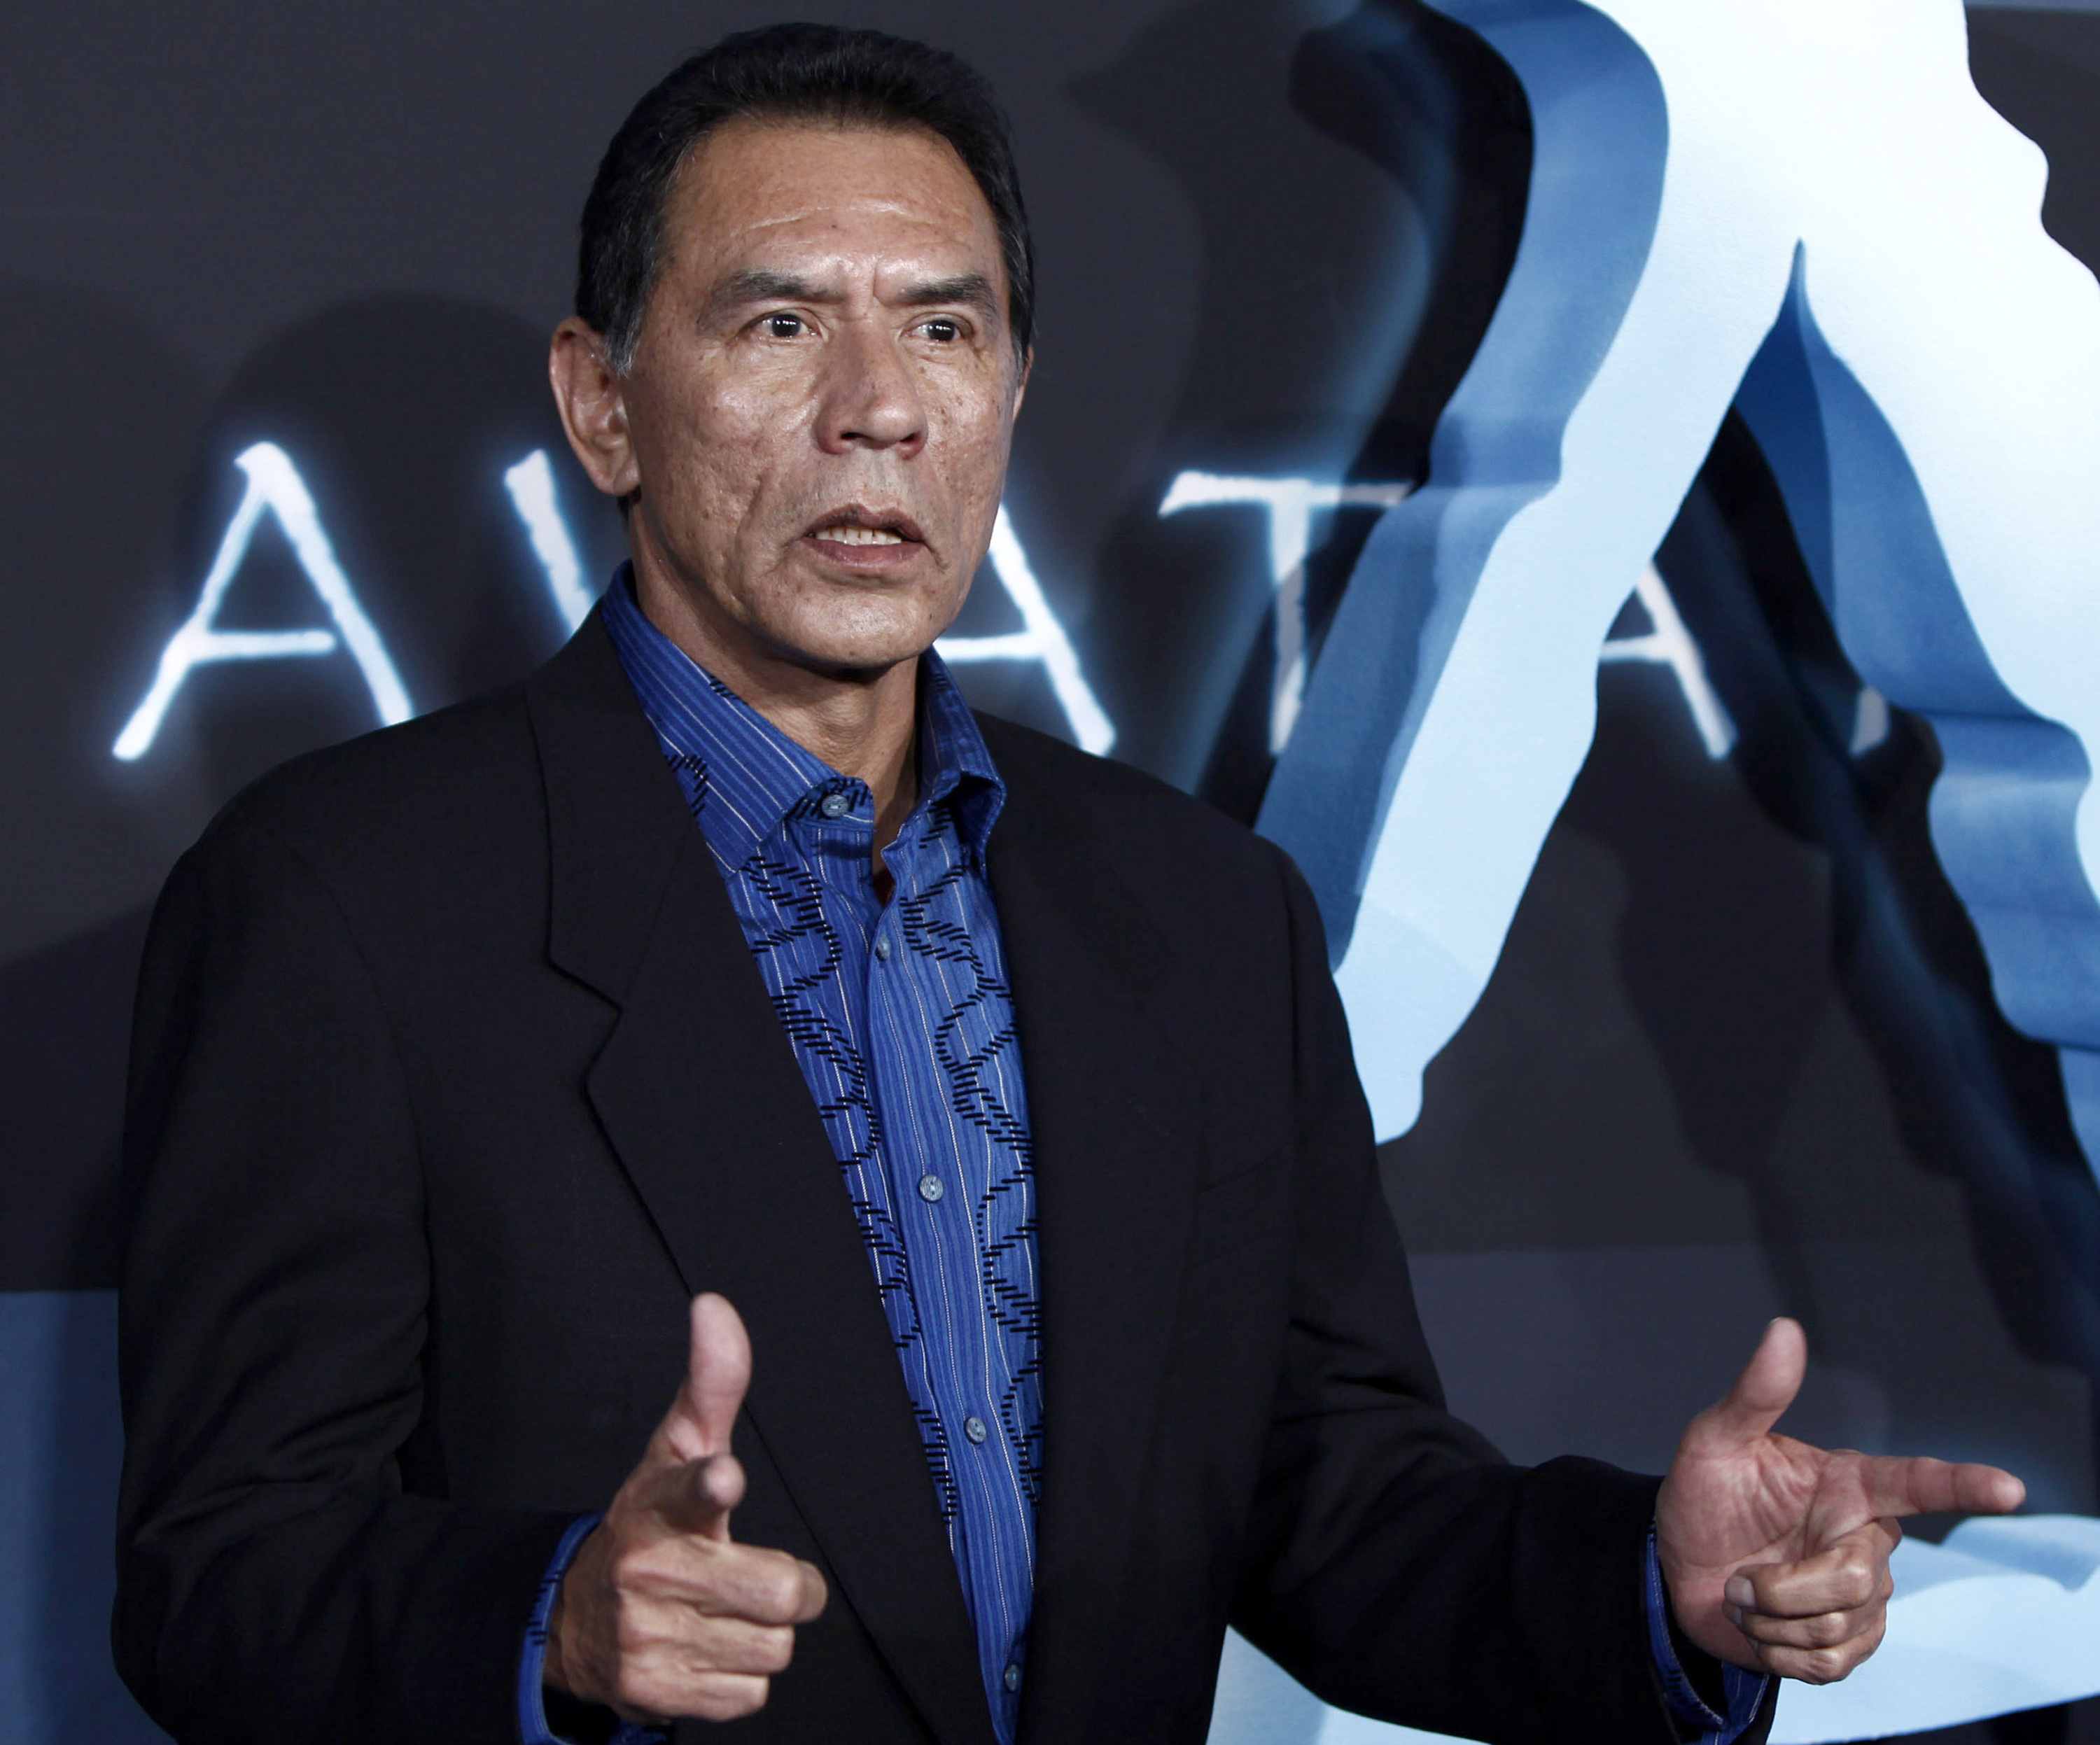 wes studi sonwes studi wiki, wes studi film, wes studi son, wes studi avatar, wes studi pawnee, wes studi facebook, wes studi movies, wes studi imdb, wes studi actor, wes studi dances with wolves, wes studi last of the mohicans, wes studi interview, wes studi geronimo, wes studi twitter, wes studi net worth, wes studi wife, wes studi vietnam, wes studi filmografia, wes studi penny dreadful, wes studi színész